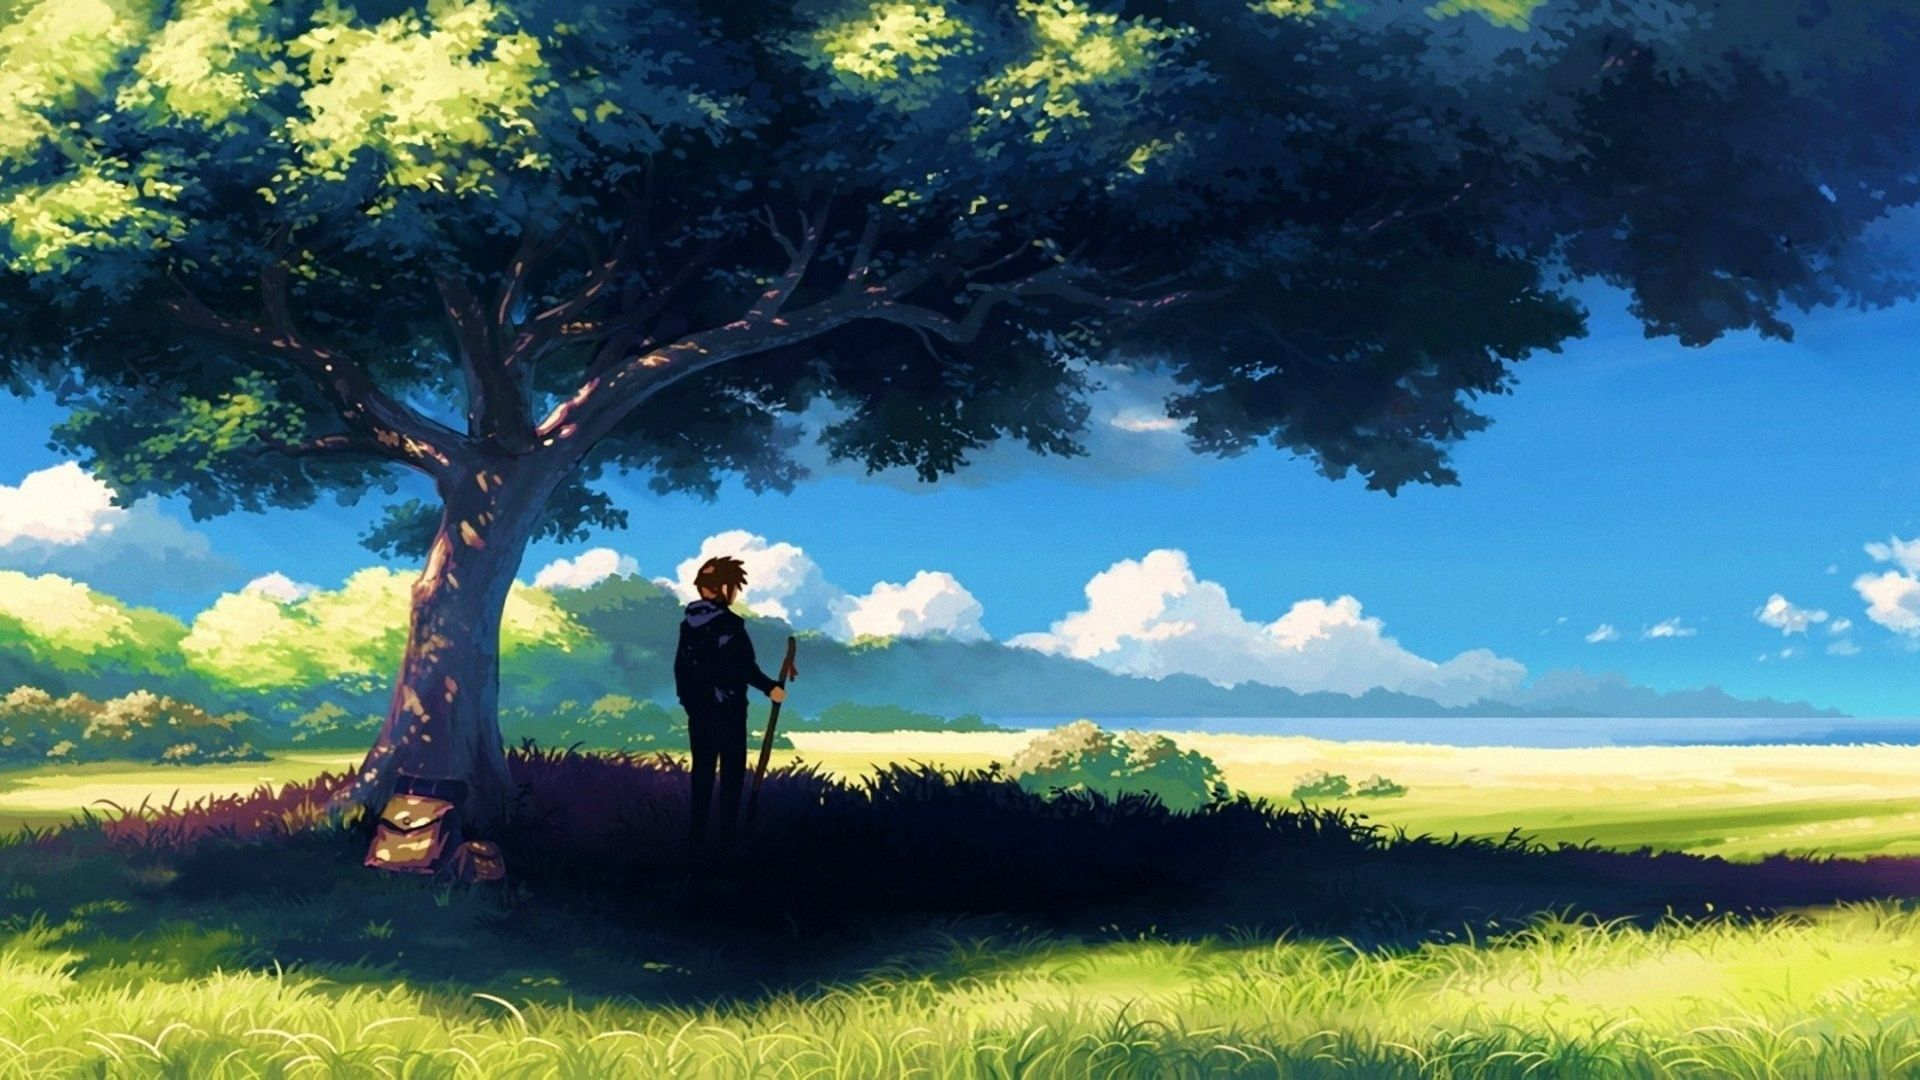 1920x1080 Anime Scenery Boy Under Tree Anime Scenery Wallpapers